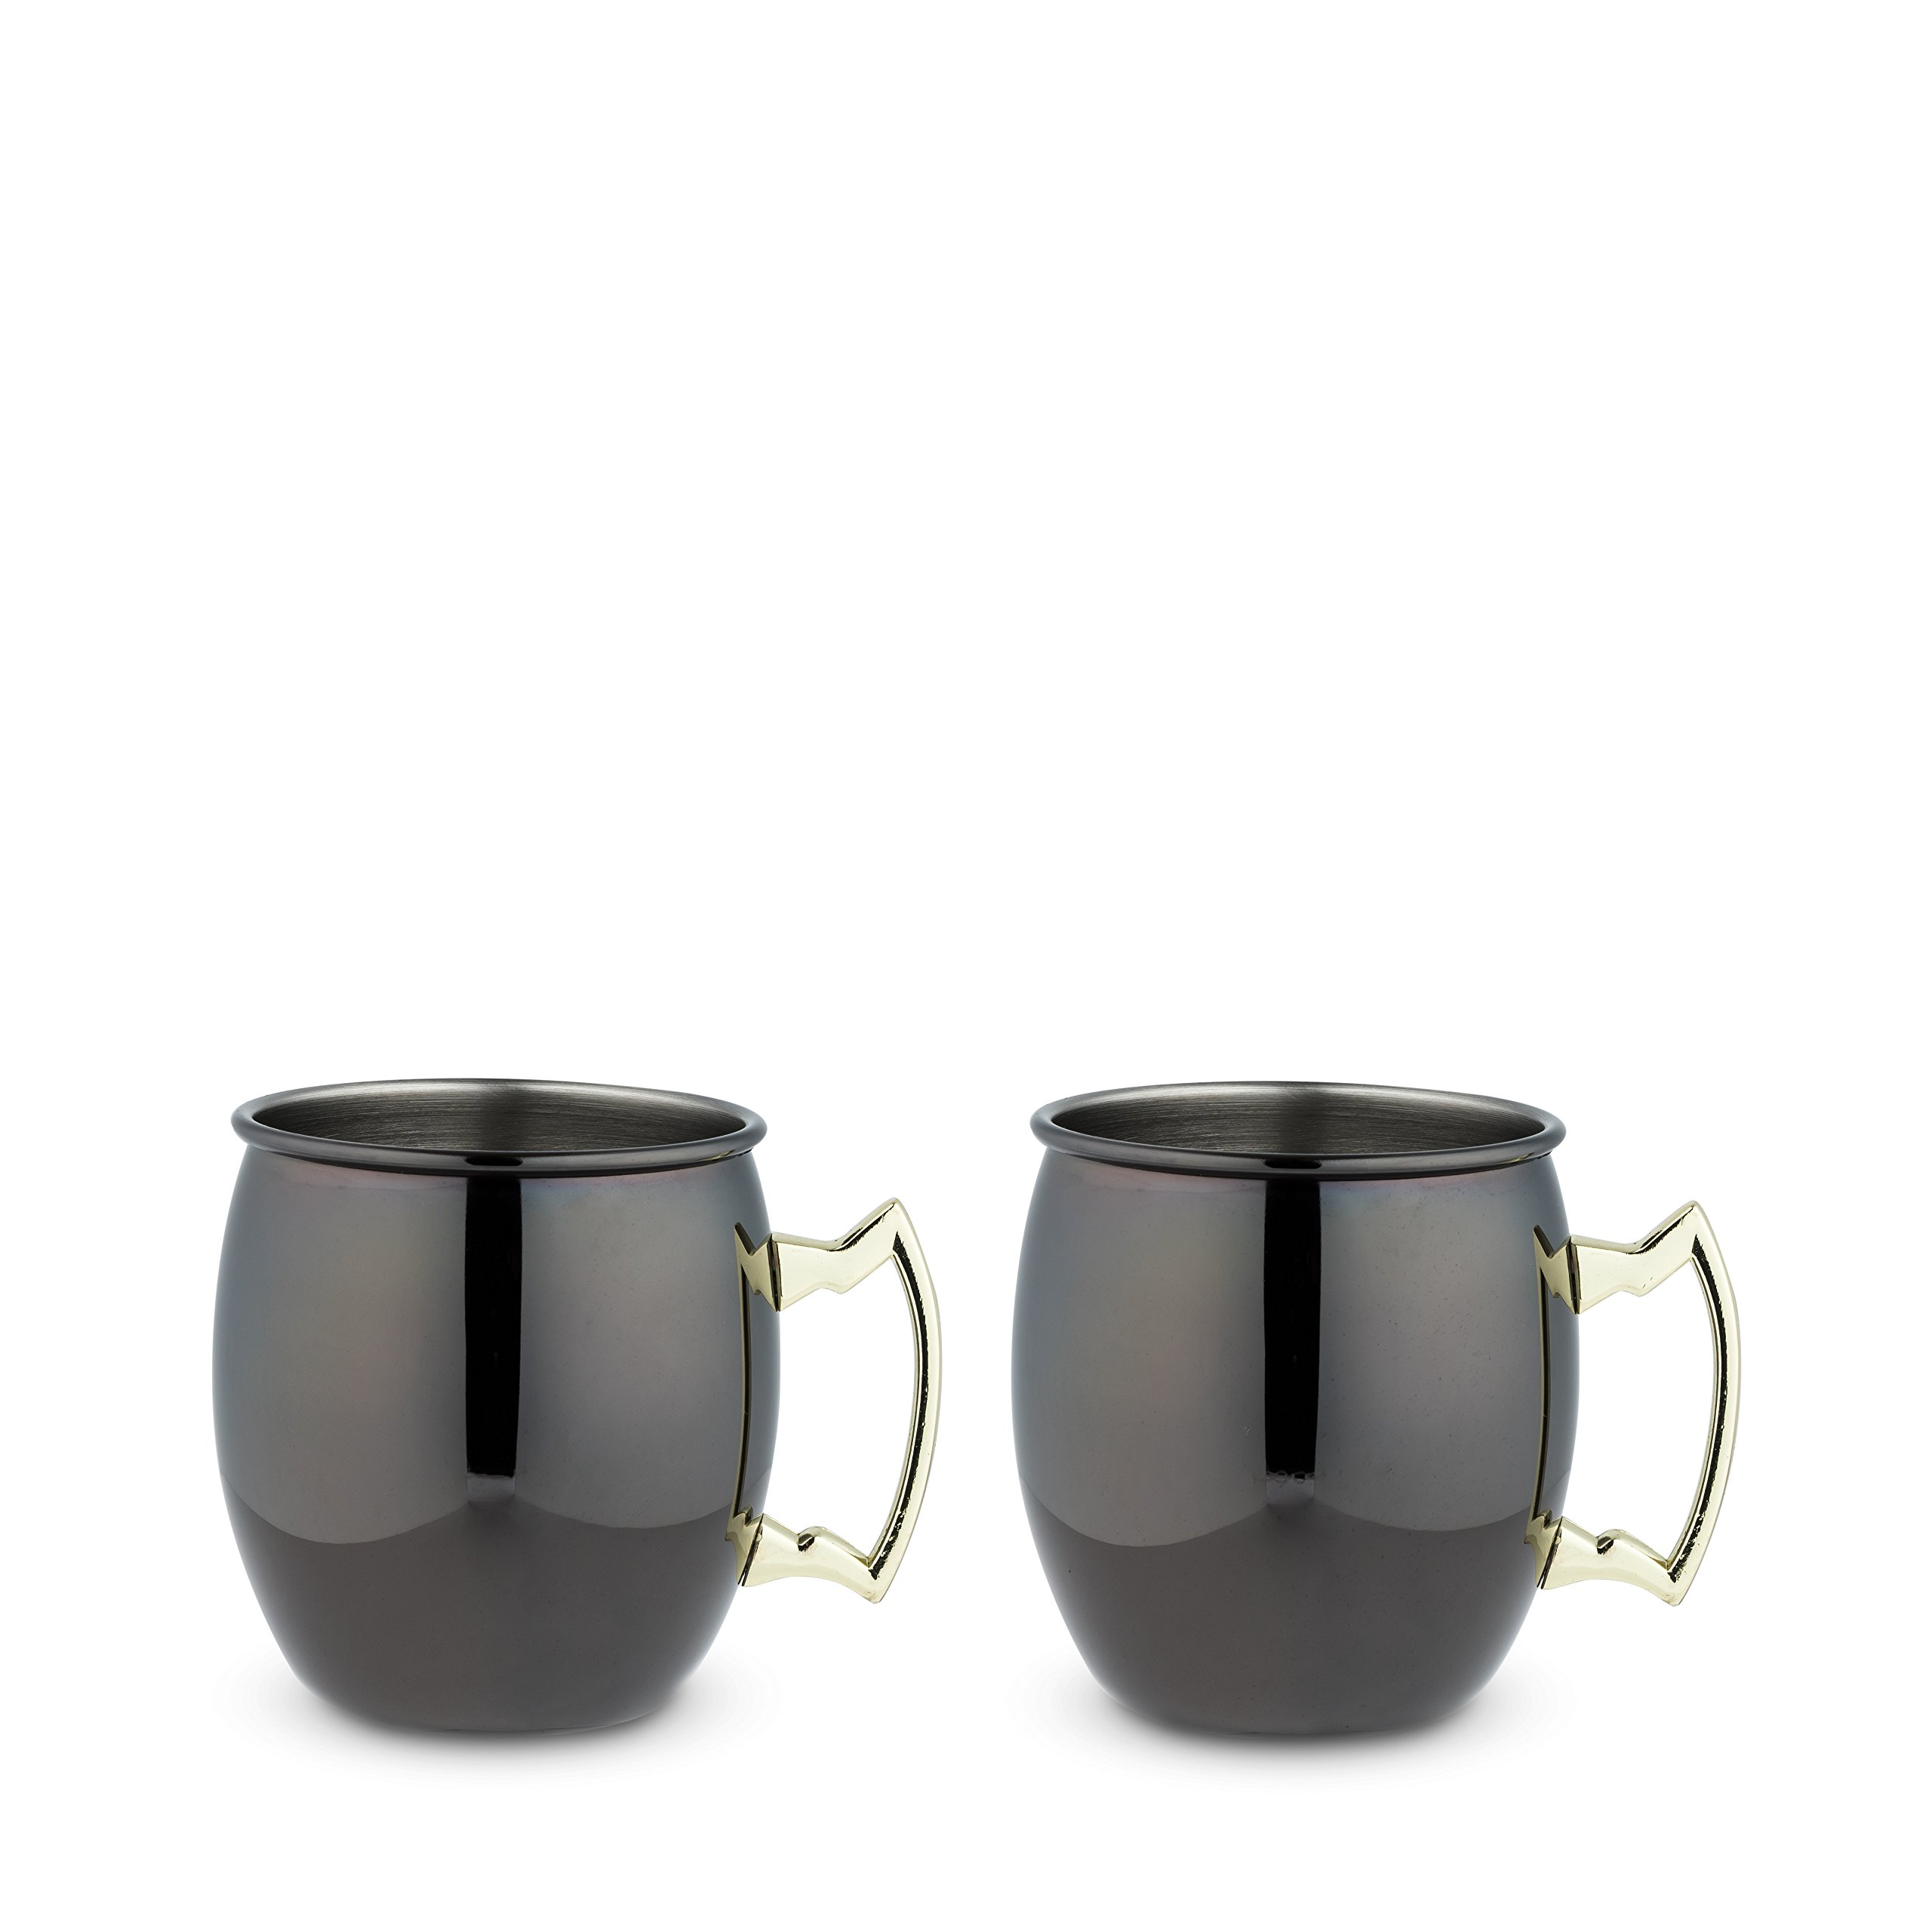 True 7385 Black Mug with Gold Handle, 2 Pack, Moscow Mule